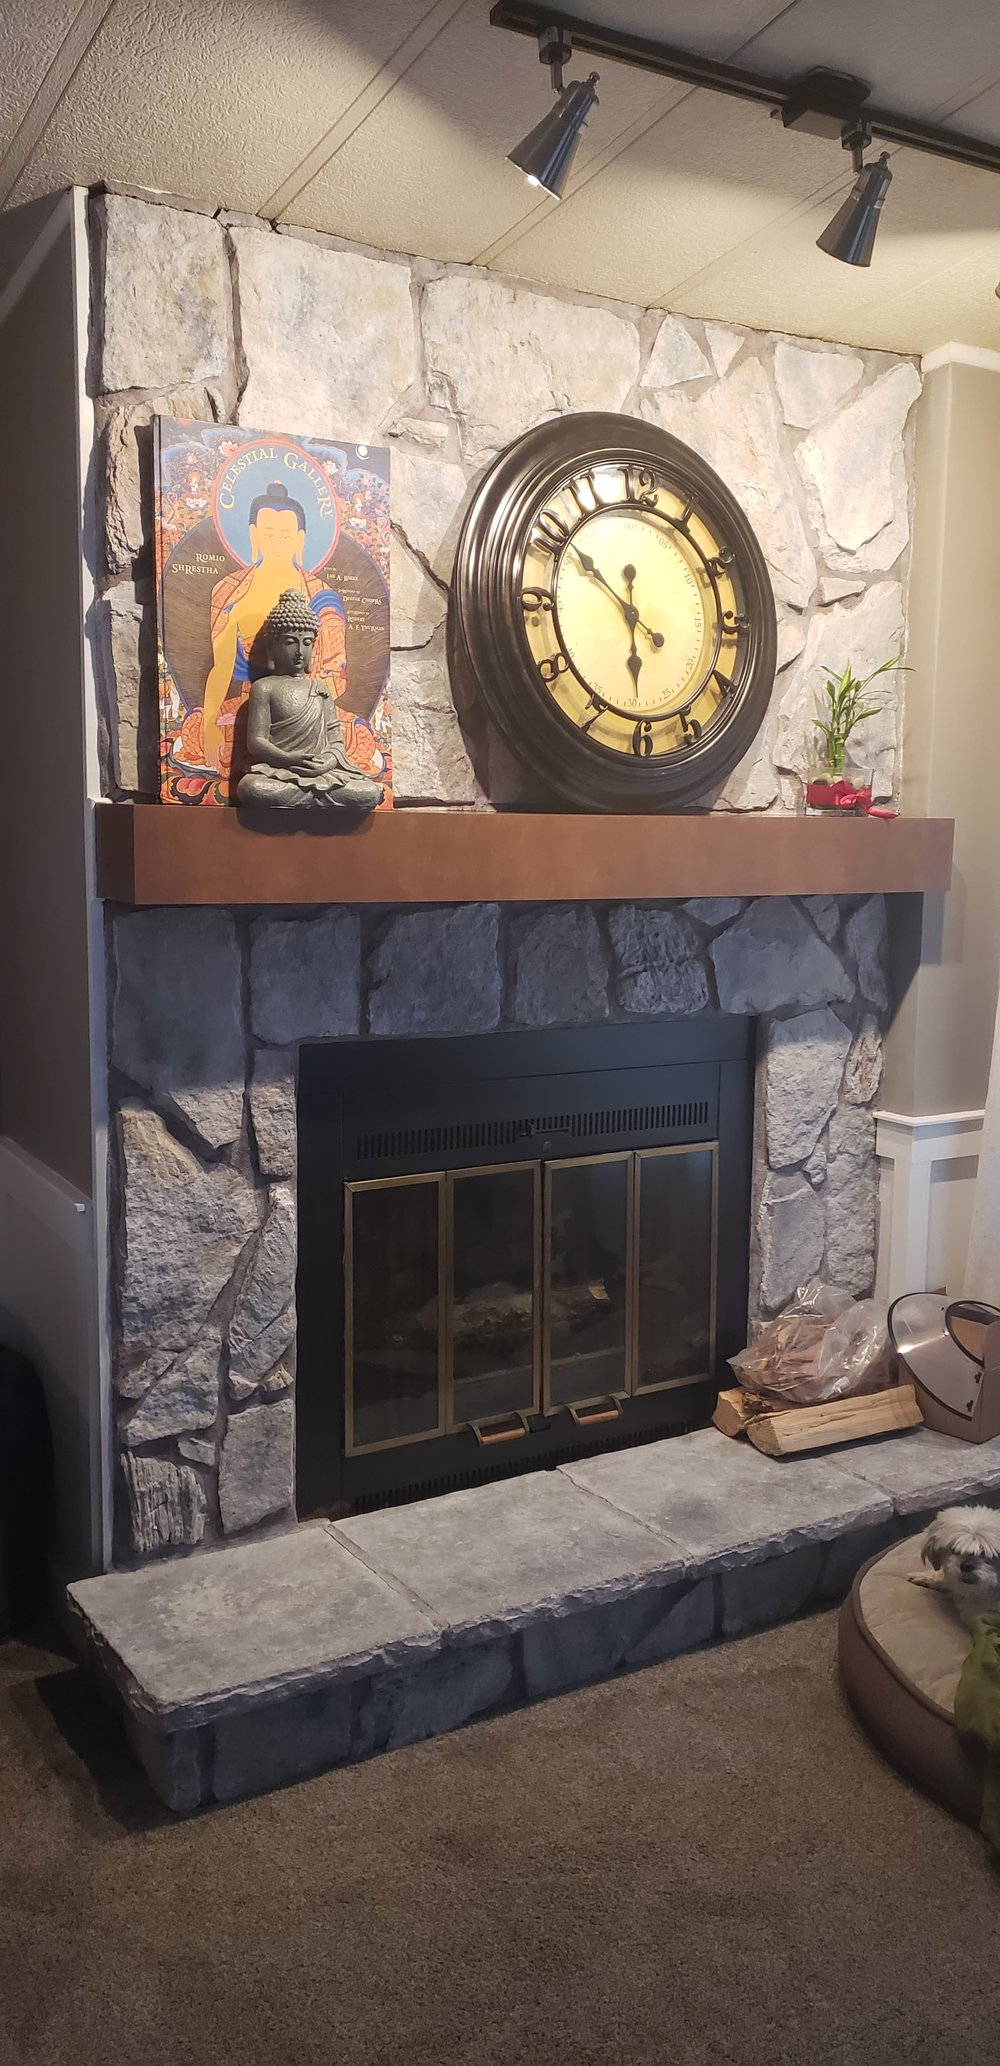 After: https://www.kristancbarril.com/blog-1/resources/2018/10/27/diy-white-washed-fireplace